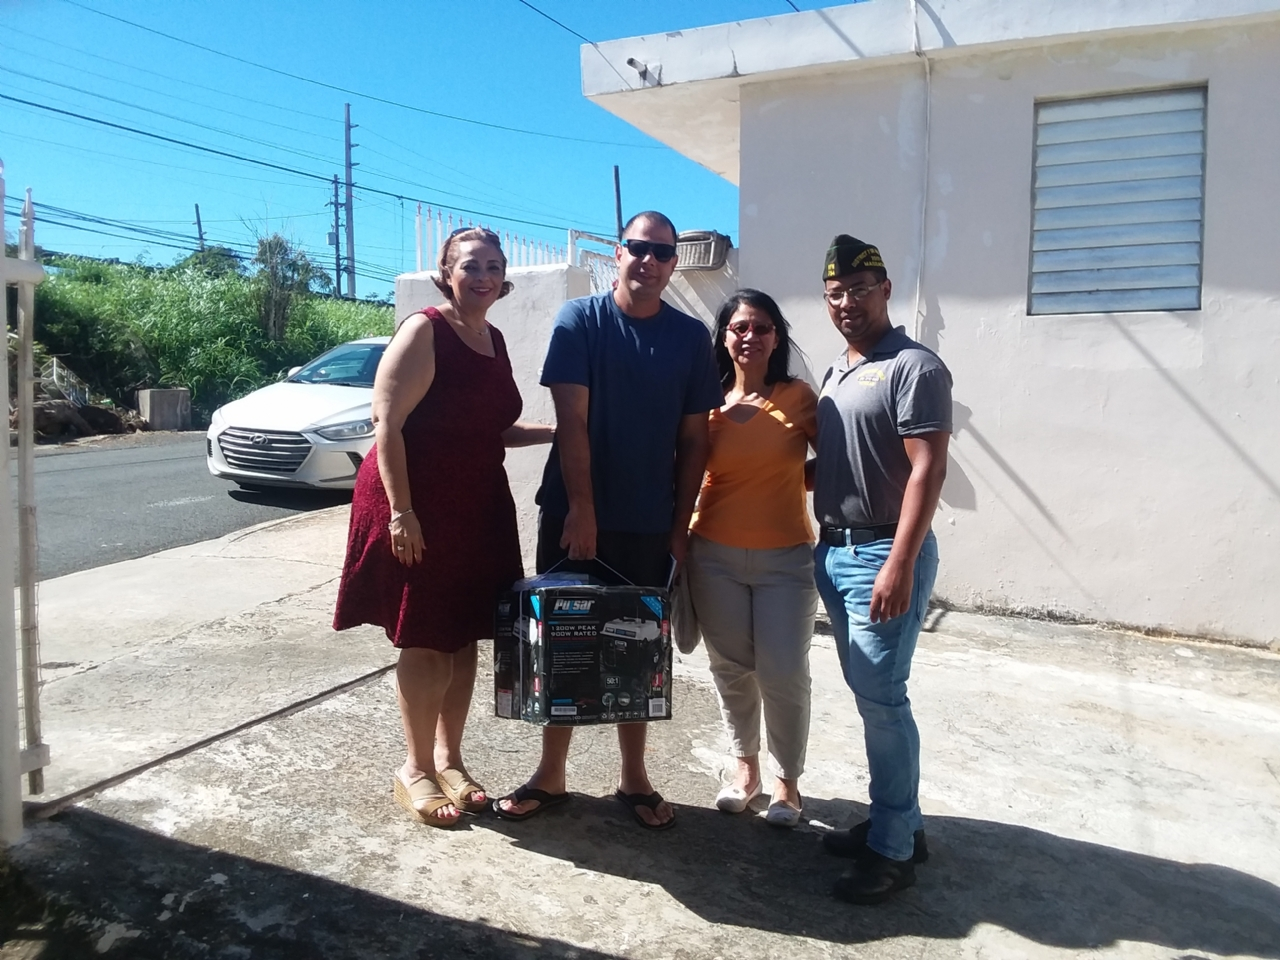 National Director of Housing for Puerto Rico and Representative Noemi Cardona, Veteran dependent Hector Morales, Huerto de Alabanza: Ministerio a las Naciones Pastor Santy Flores and her son, National Deputy Chief Staff,  VDAC Chairman and Post 754 Commander Gamalier Rosa.